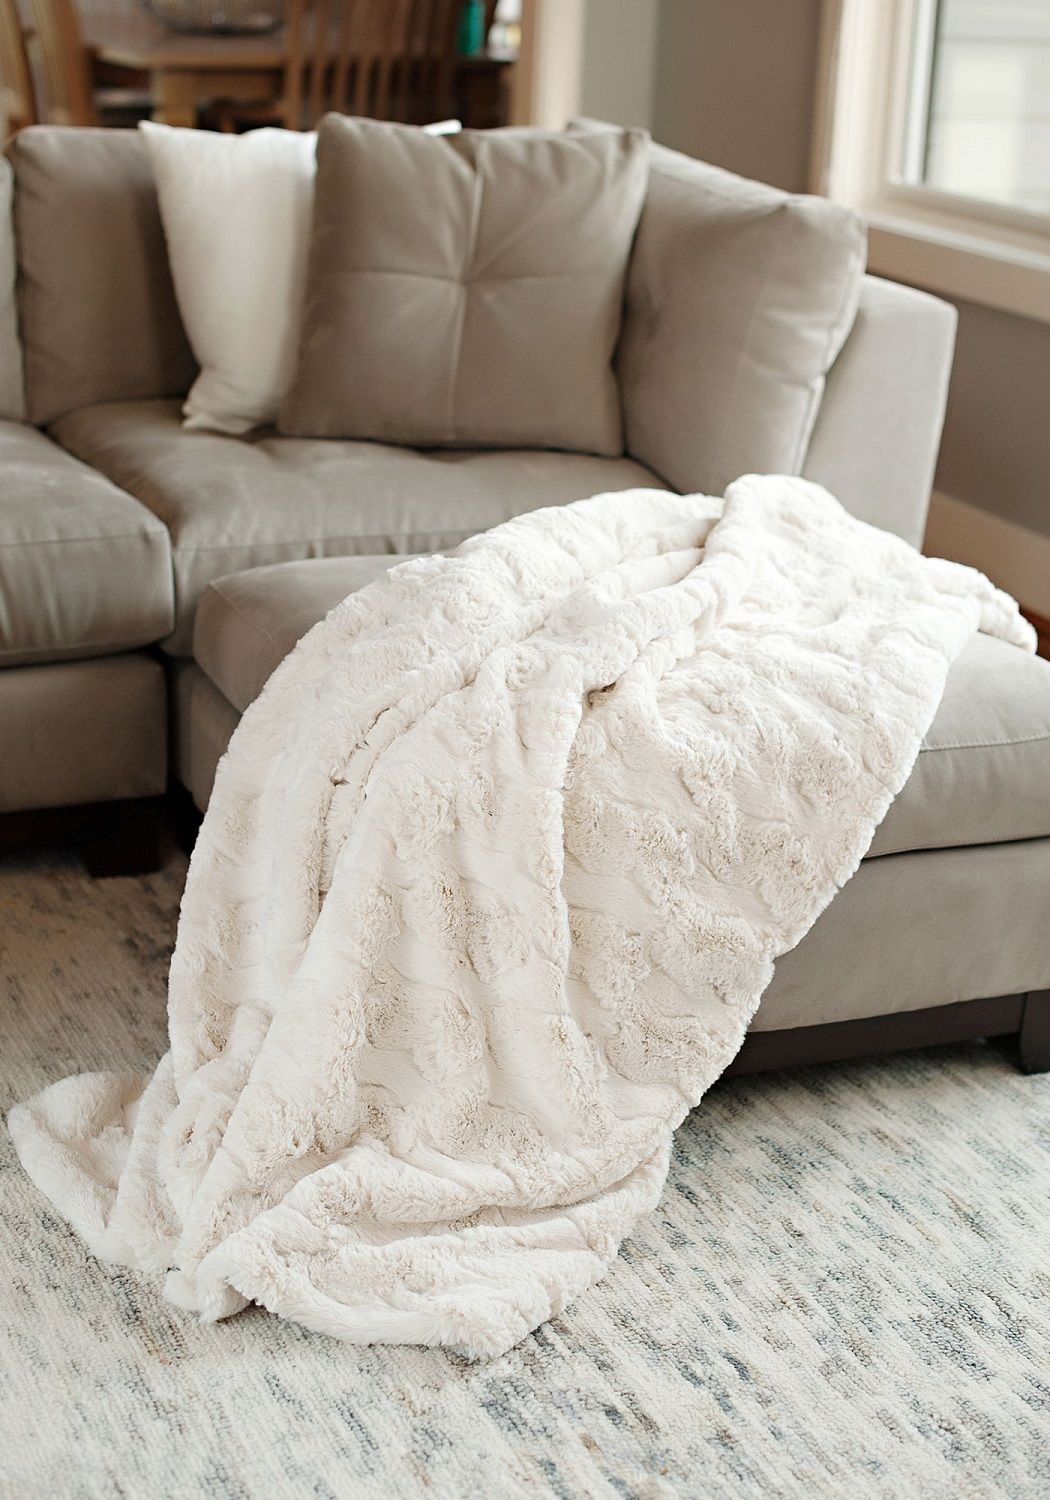 For Throw Blankets Faux Fur Mink Throws At Donna Salyers Fabulous Furs